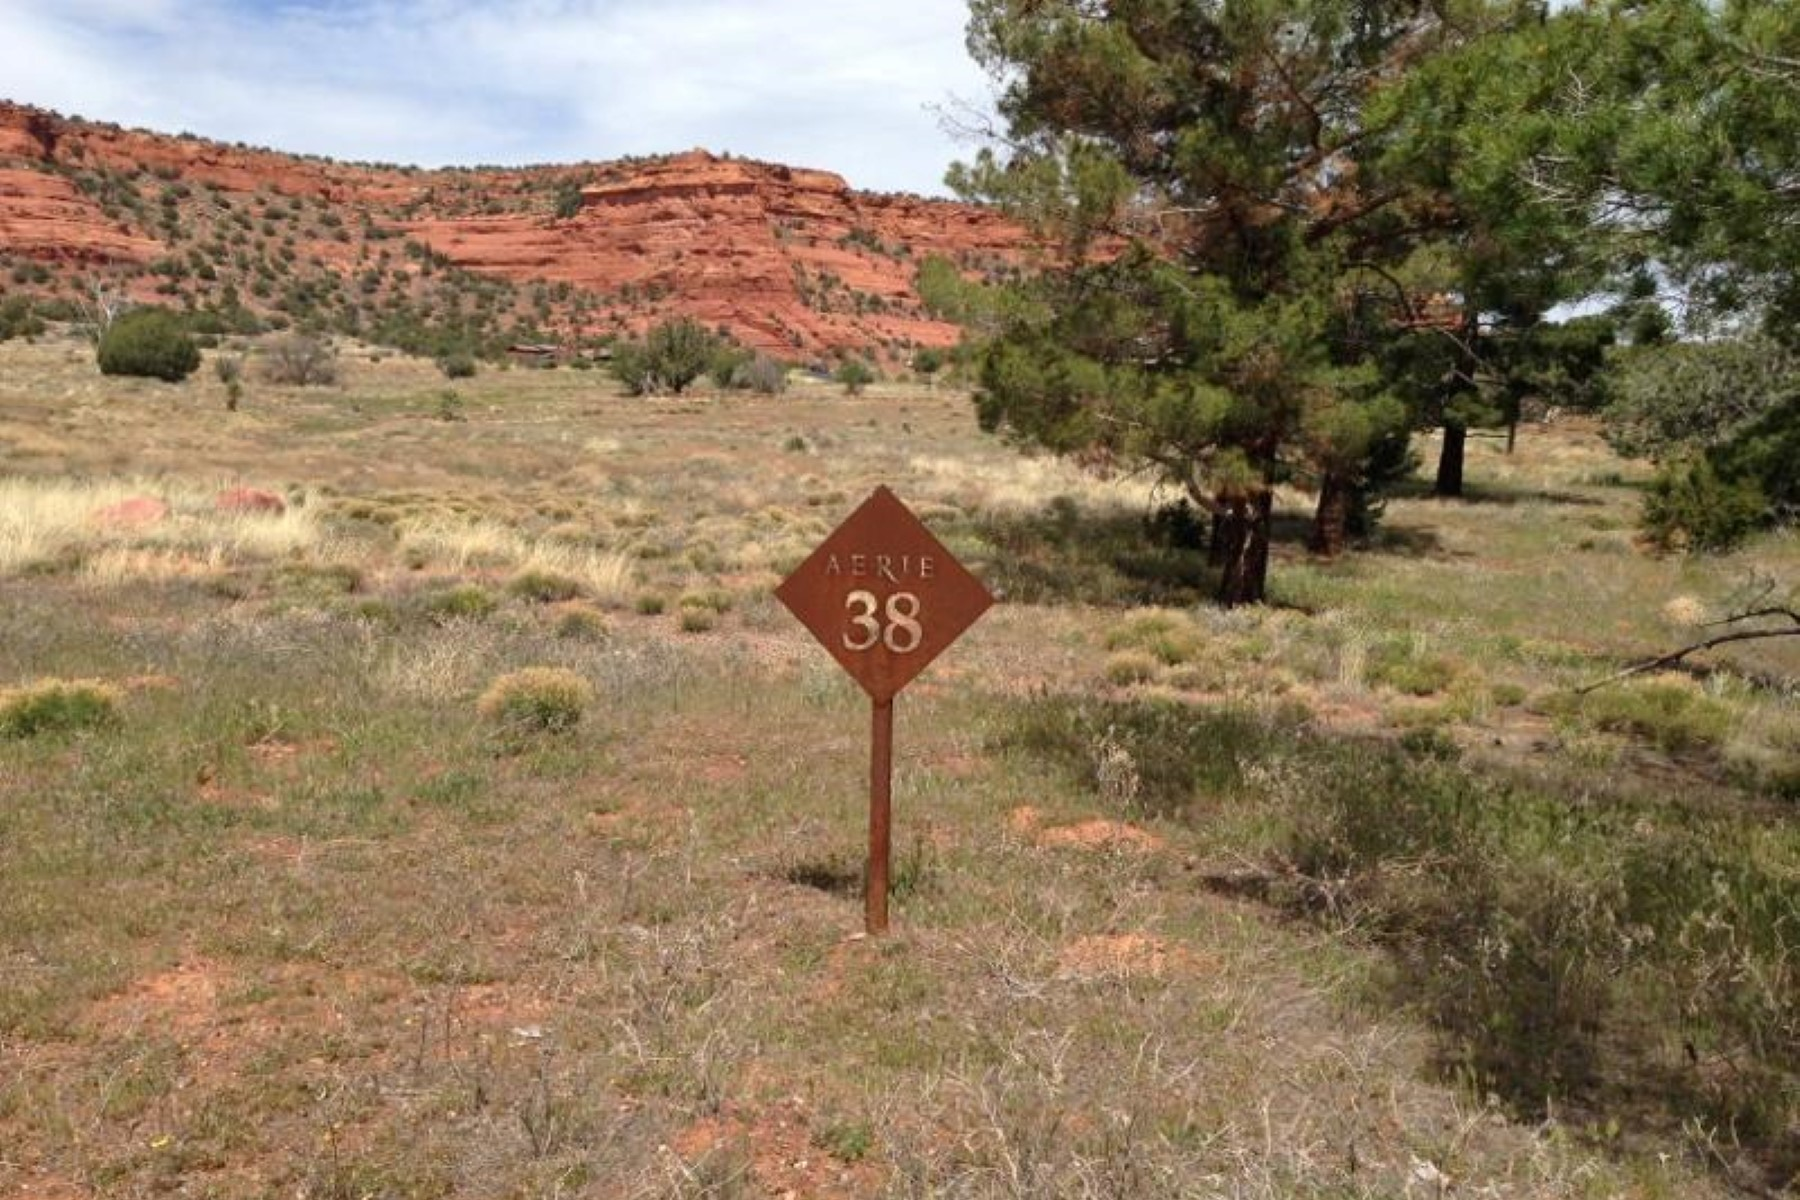 Land für Verkauf beim Central 2.9 acre lot with expansive views of Doe Mountain and Cockscomb. 345 Aerie RD Sedona, Arizona 86336 Vereinigte Staaten